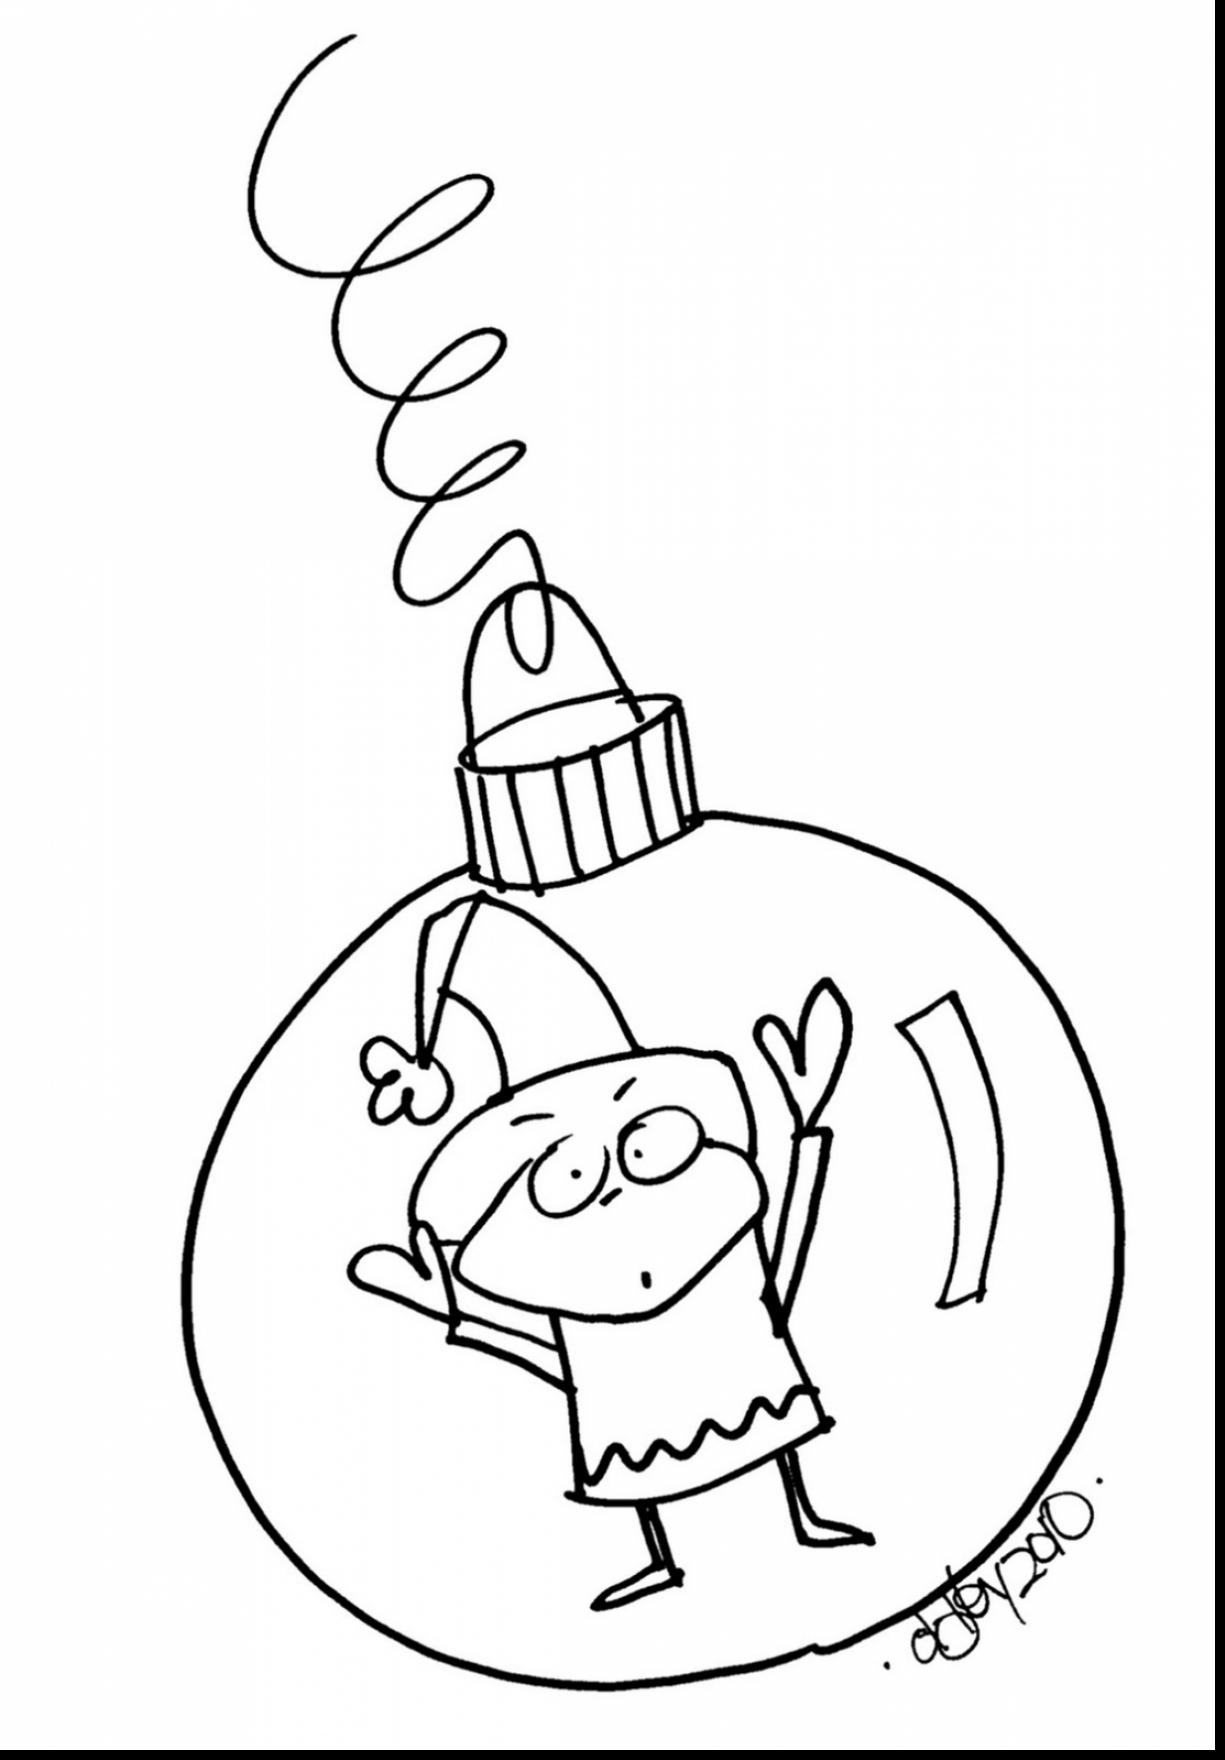 Madcoloring Pages At Getcolorings